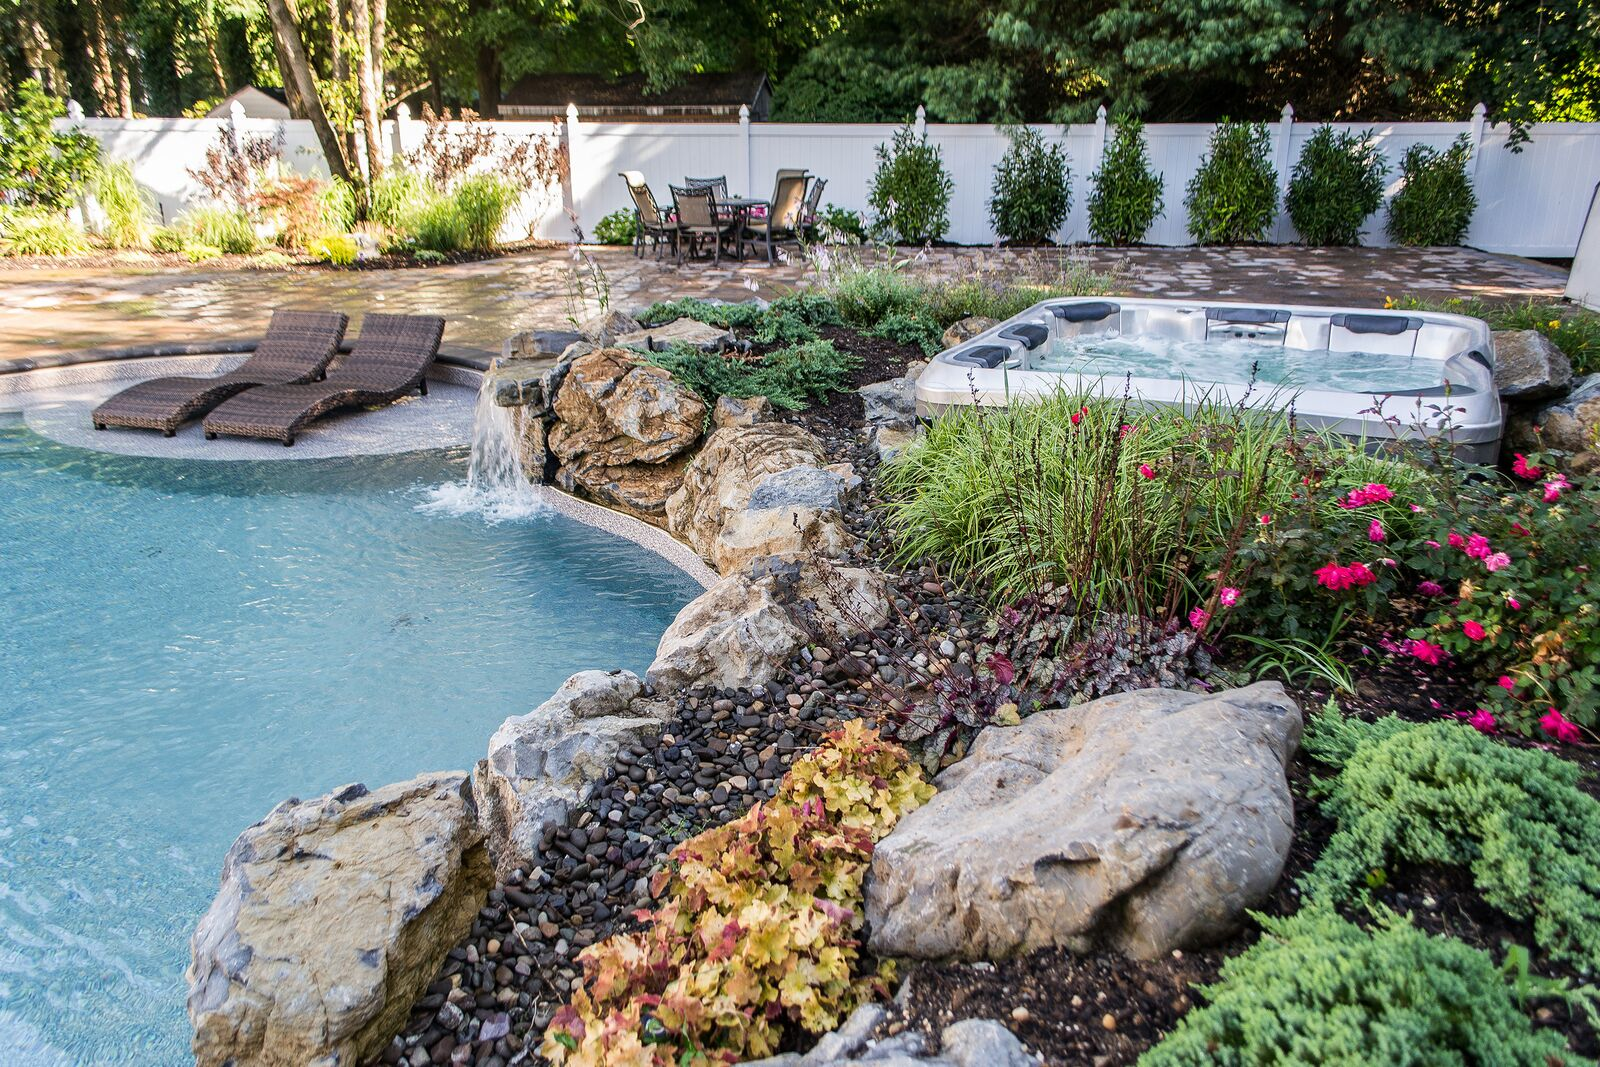 hot the ponds tub swimming rhpinterestcom waterfall no by boulder created above and u pools pond fed johnus pool natural